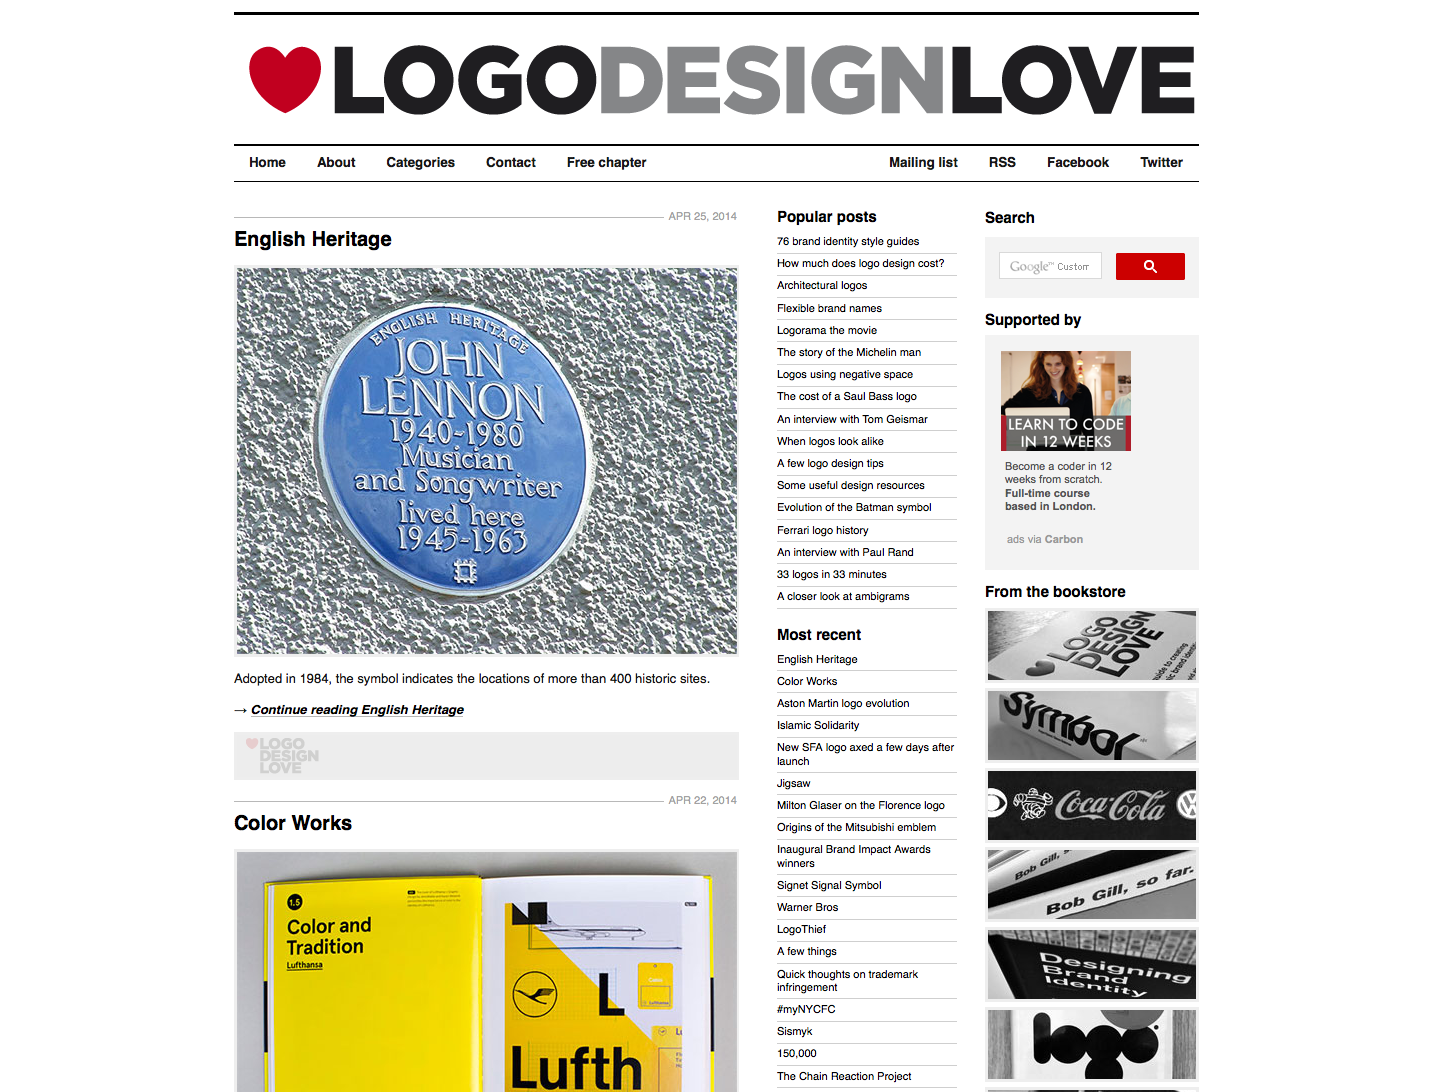 David Airey Presents Logo Design Love